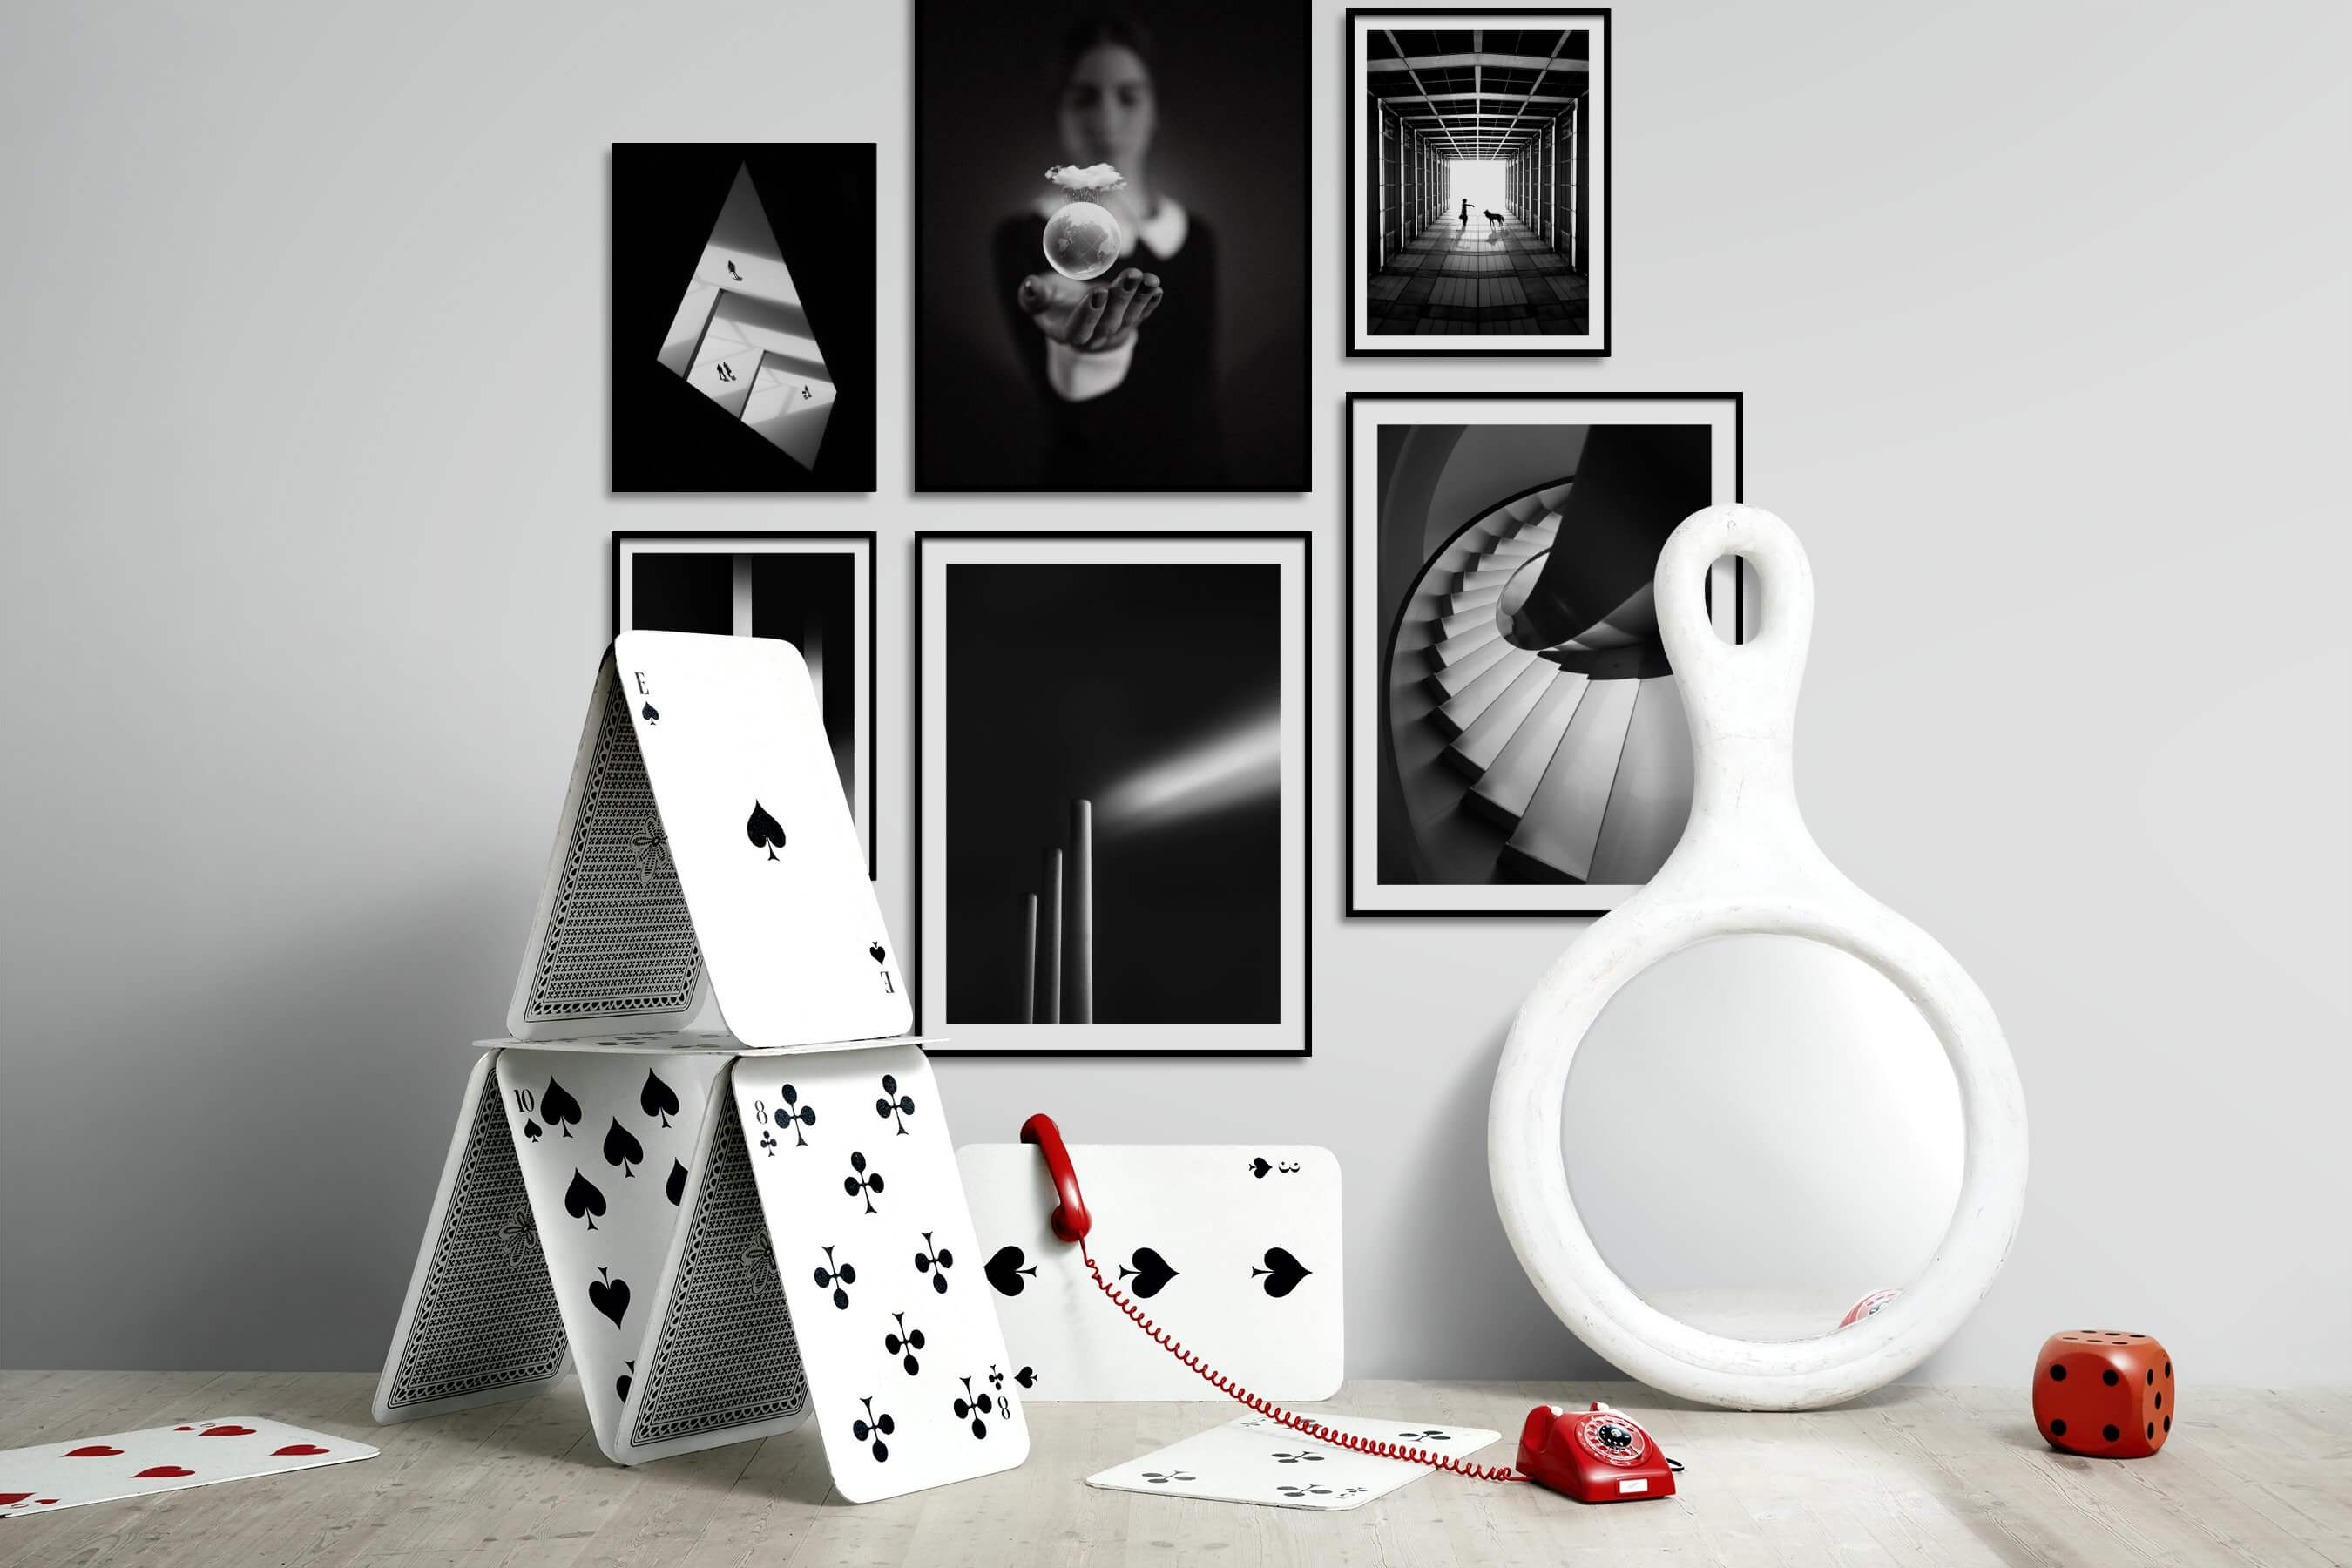 Gallery wall idea with six framed pictures arranged on a wall depicting Black & White, Dark Tones, For the Minimalist, Artsy, For the Moderate, and Animals